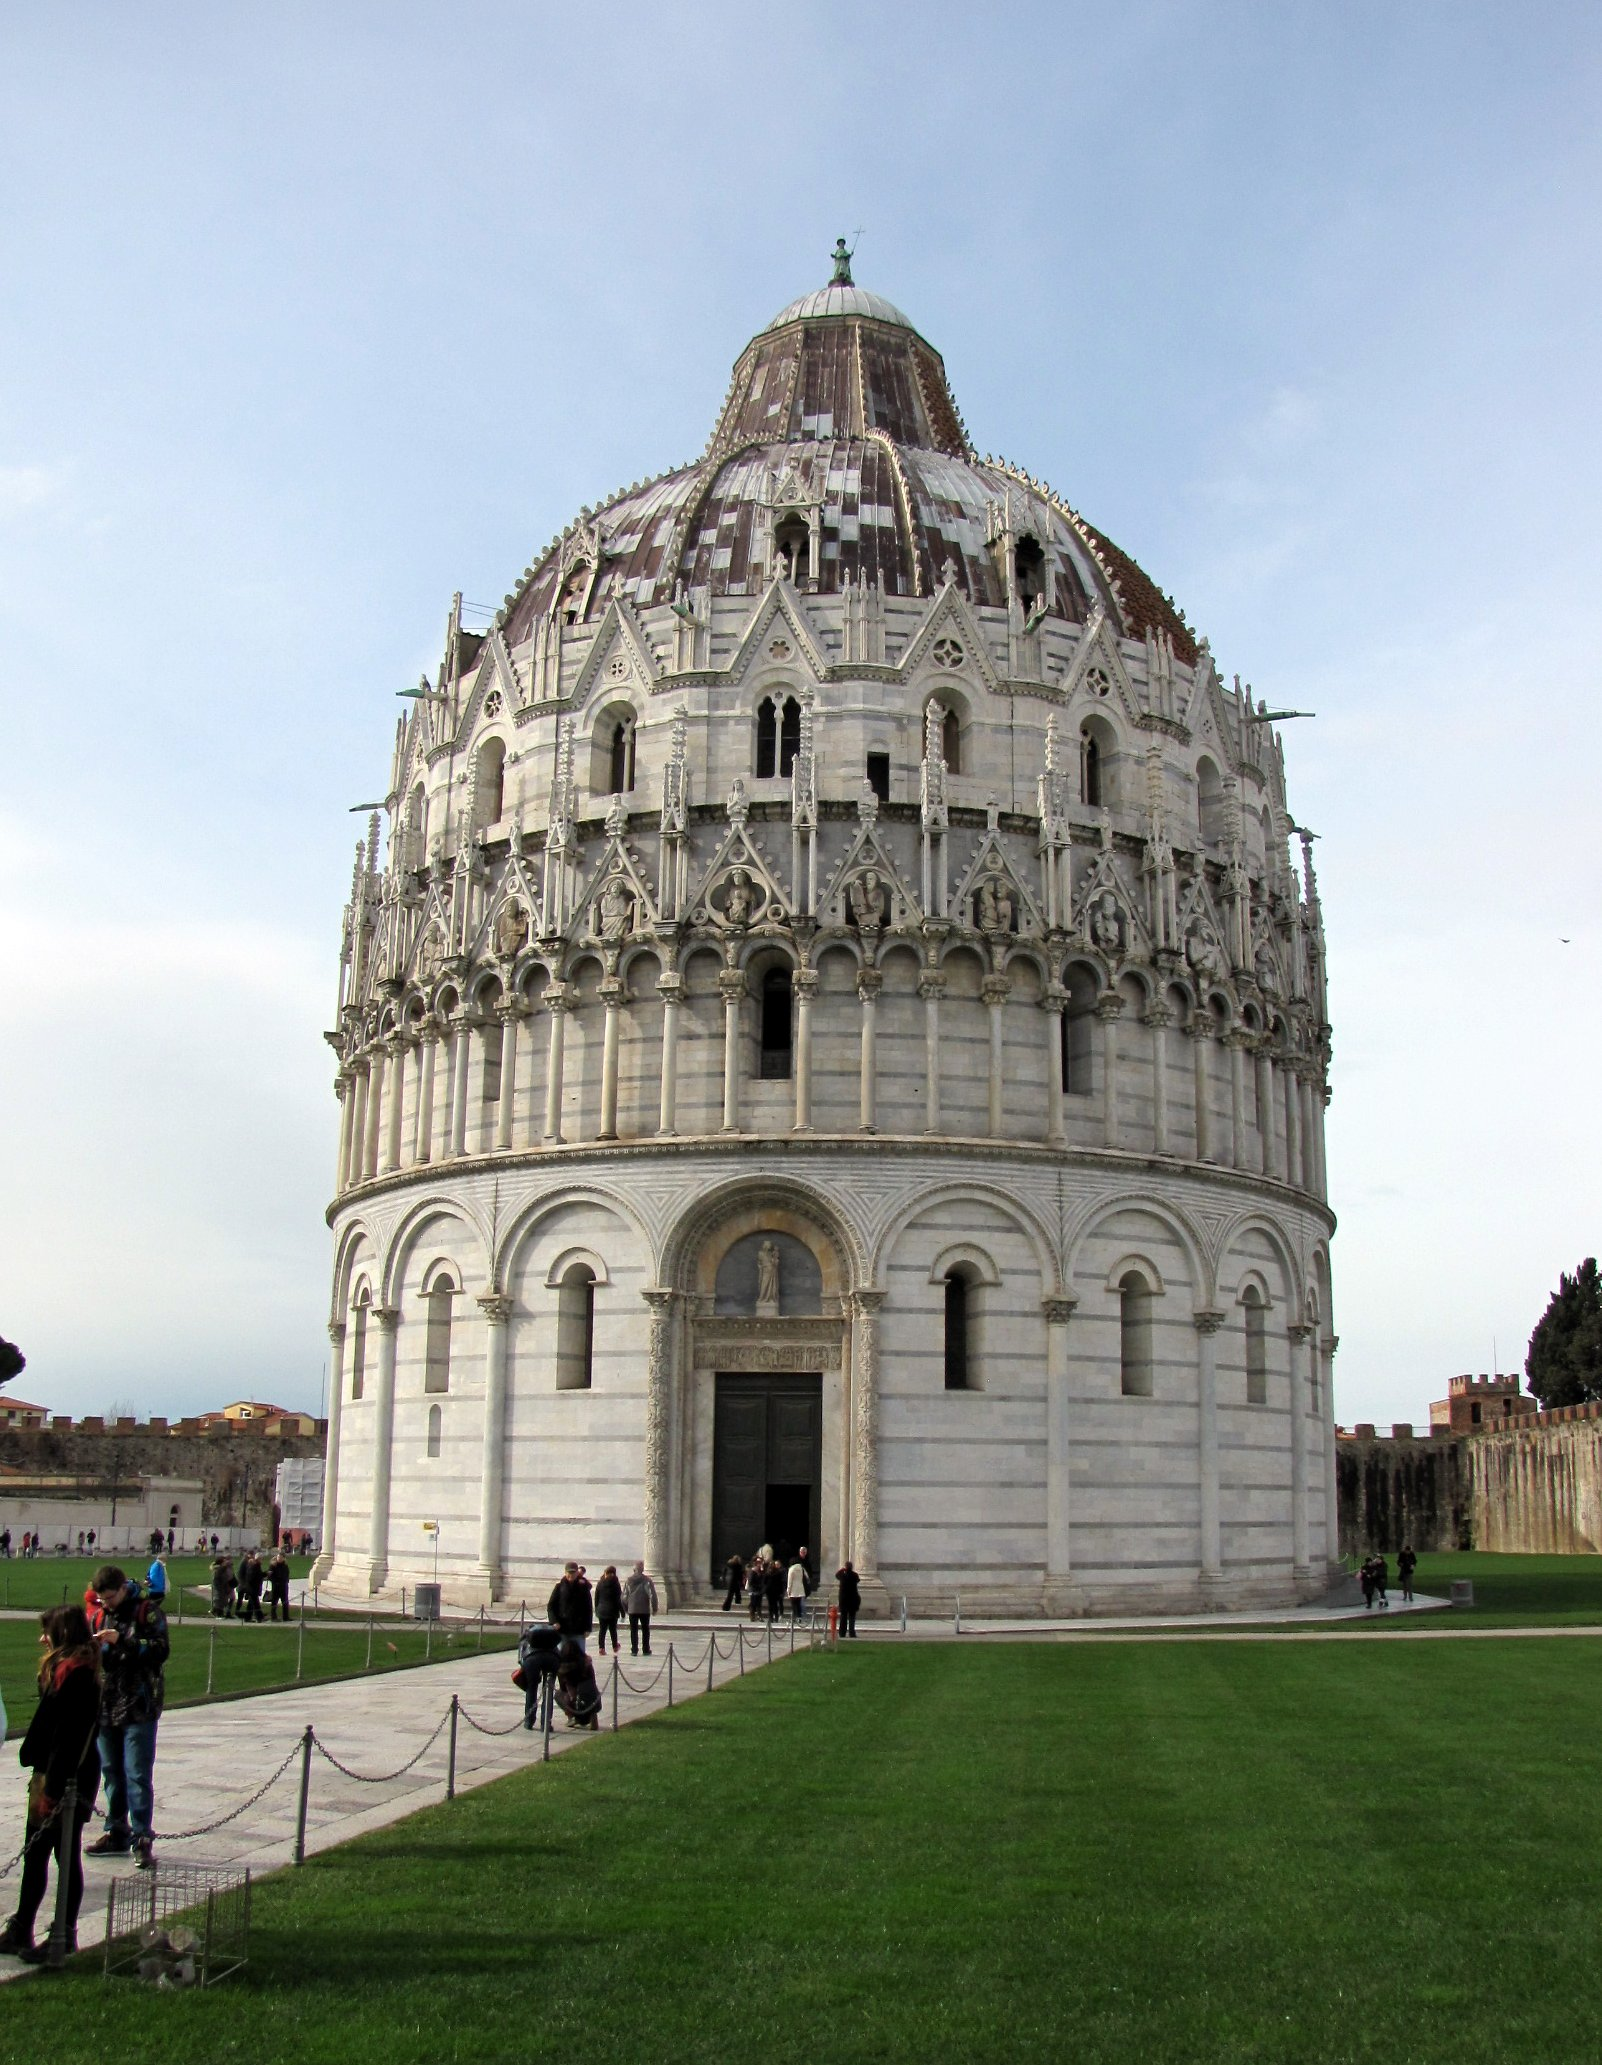 The baptistry.